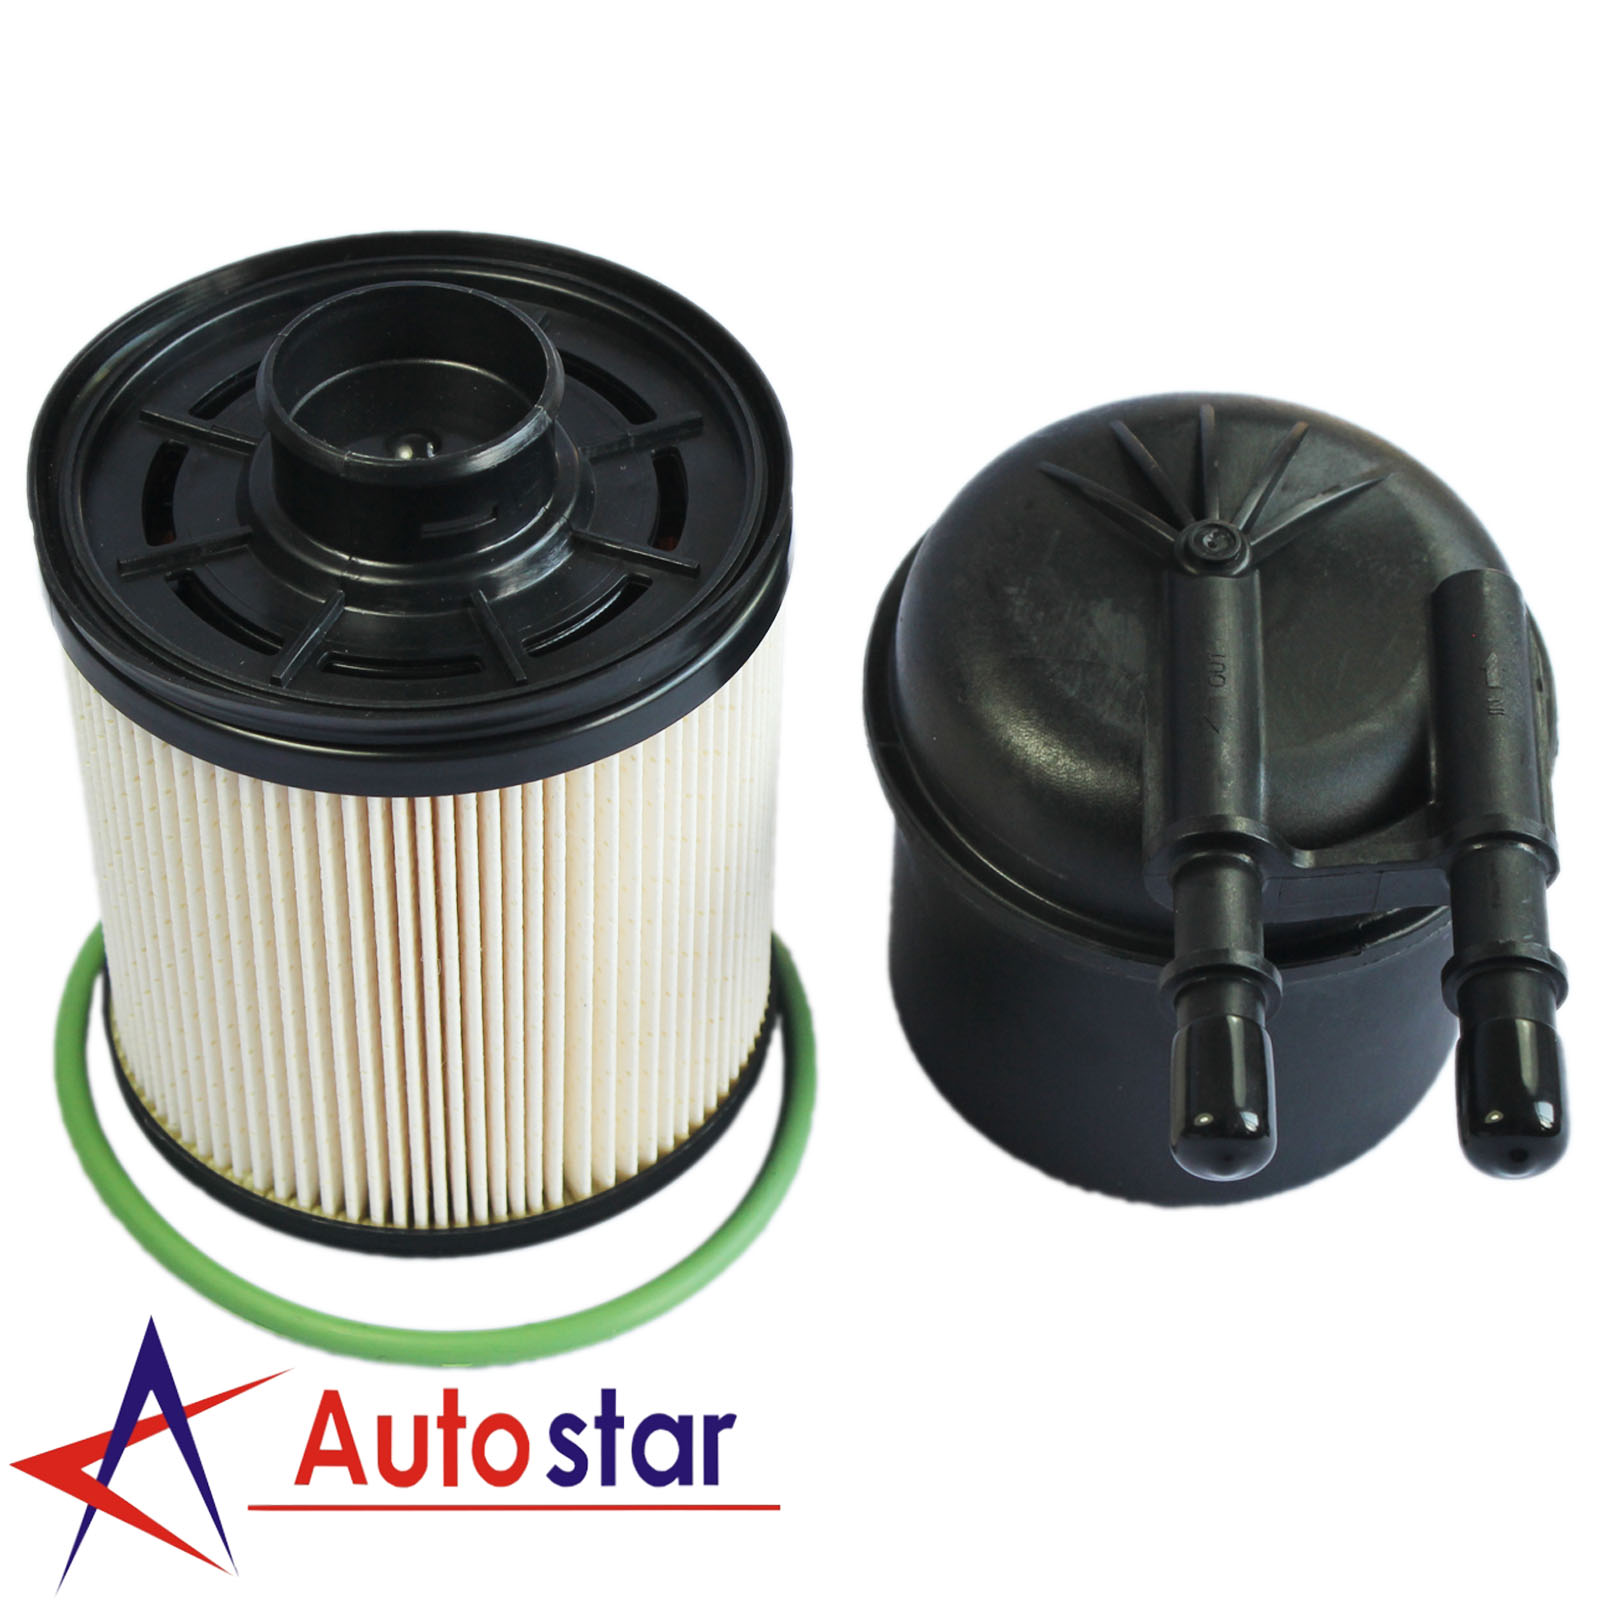 new fd4615 fuel filters for f250 f350 f450 f550 2011 2016. Black Bedroom Furniture Sets. Home Design Ideas